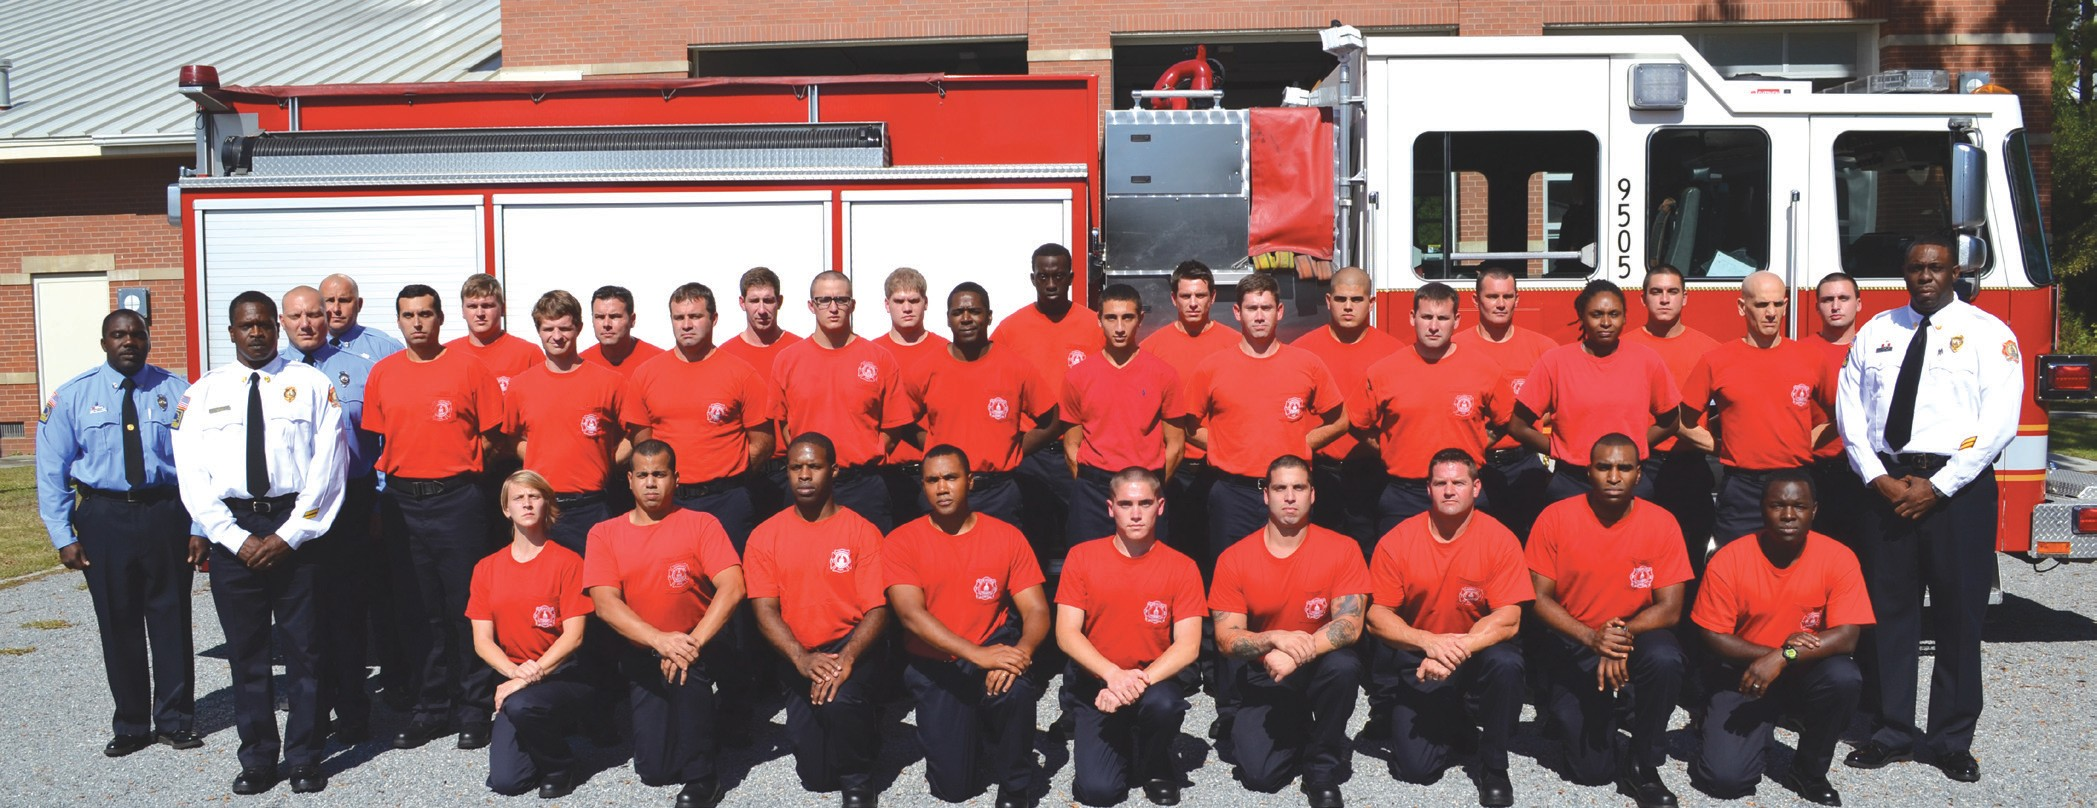 Captain Dietrich Chapple, Megan Garrison, Abiam Rivas, Taig Herring, JaMell Callahan, Colton Gasperson, Joshua Duran, Stephen Knight, Alexander Williams, Roger Williams. Center row (l-r) MFF Wayne Ifil, MFF Scott Boyd, Luke Ortiz, Matthew Solomon, Ryan Lenz, Jeremy Veale, Darren Lampley, Christian Hutcherson, Travis Pool, Ryan Marquez, Natasha Brackett, Abraham Febles, Captain Santonio Johnson. Back row (l-r) MFF Scott Novak, Adam Raffield, Andrew Bender, Colin Billotto, Justin Evans, Daniel Simons, Brian Neilson, Robert Gabelmann, Justin Goldberg, Kyle Johnson, Davis Carcione